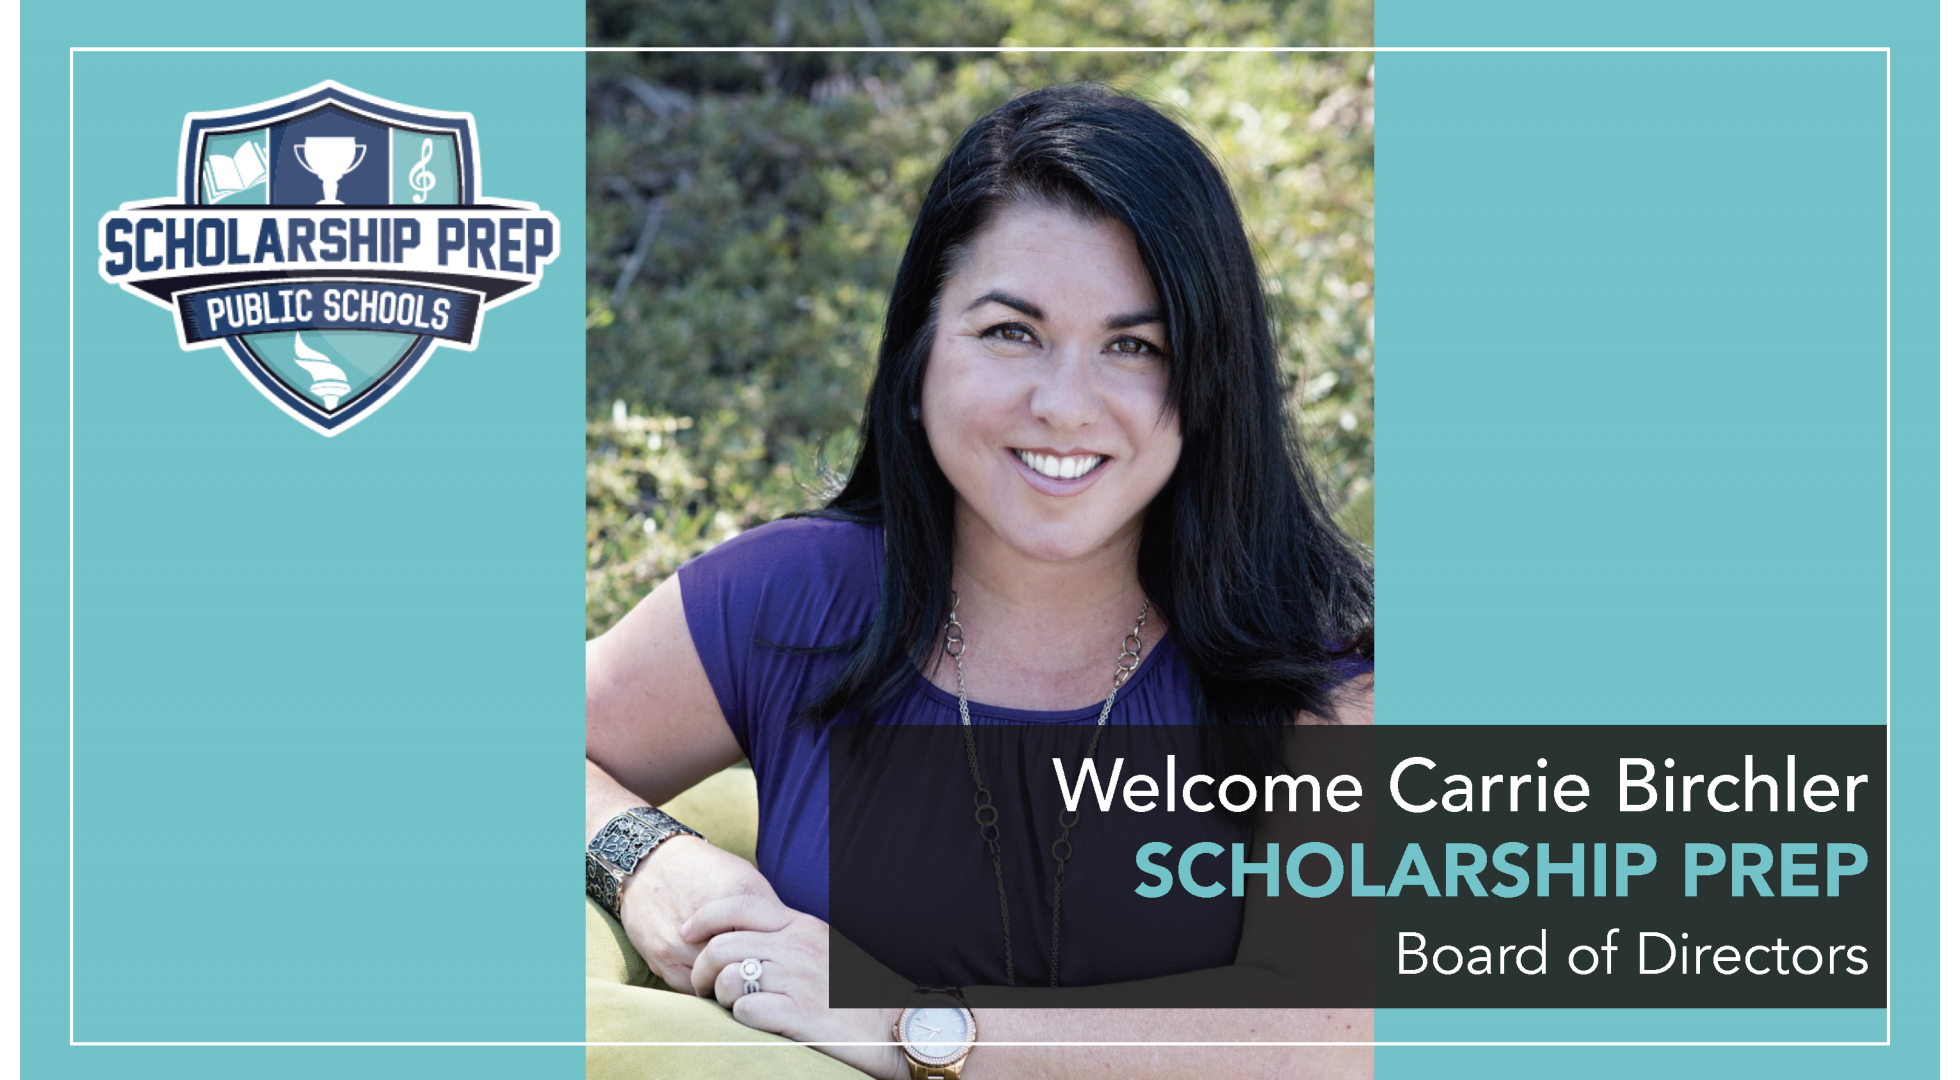 Scholarship Prep Welcomes Carrie Birchler to its Board of Directors